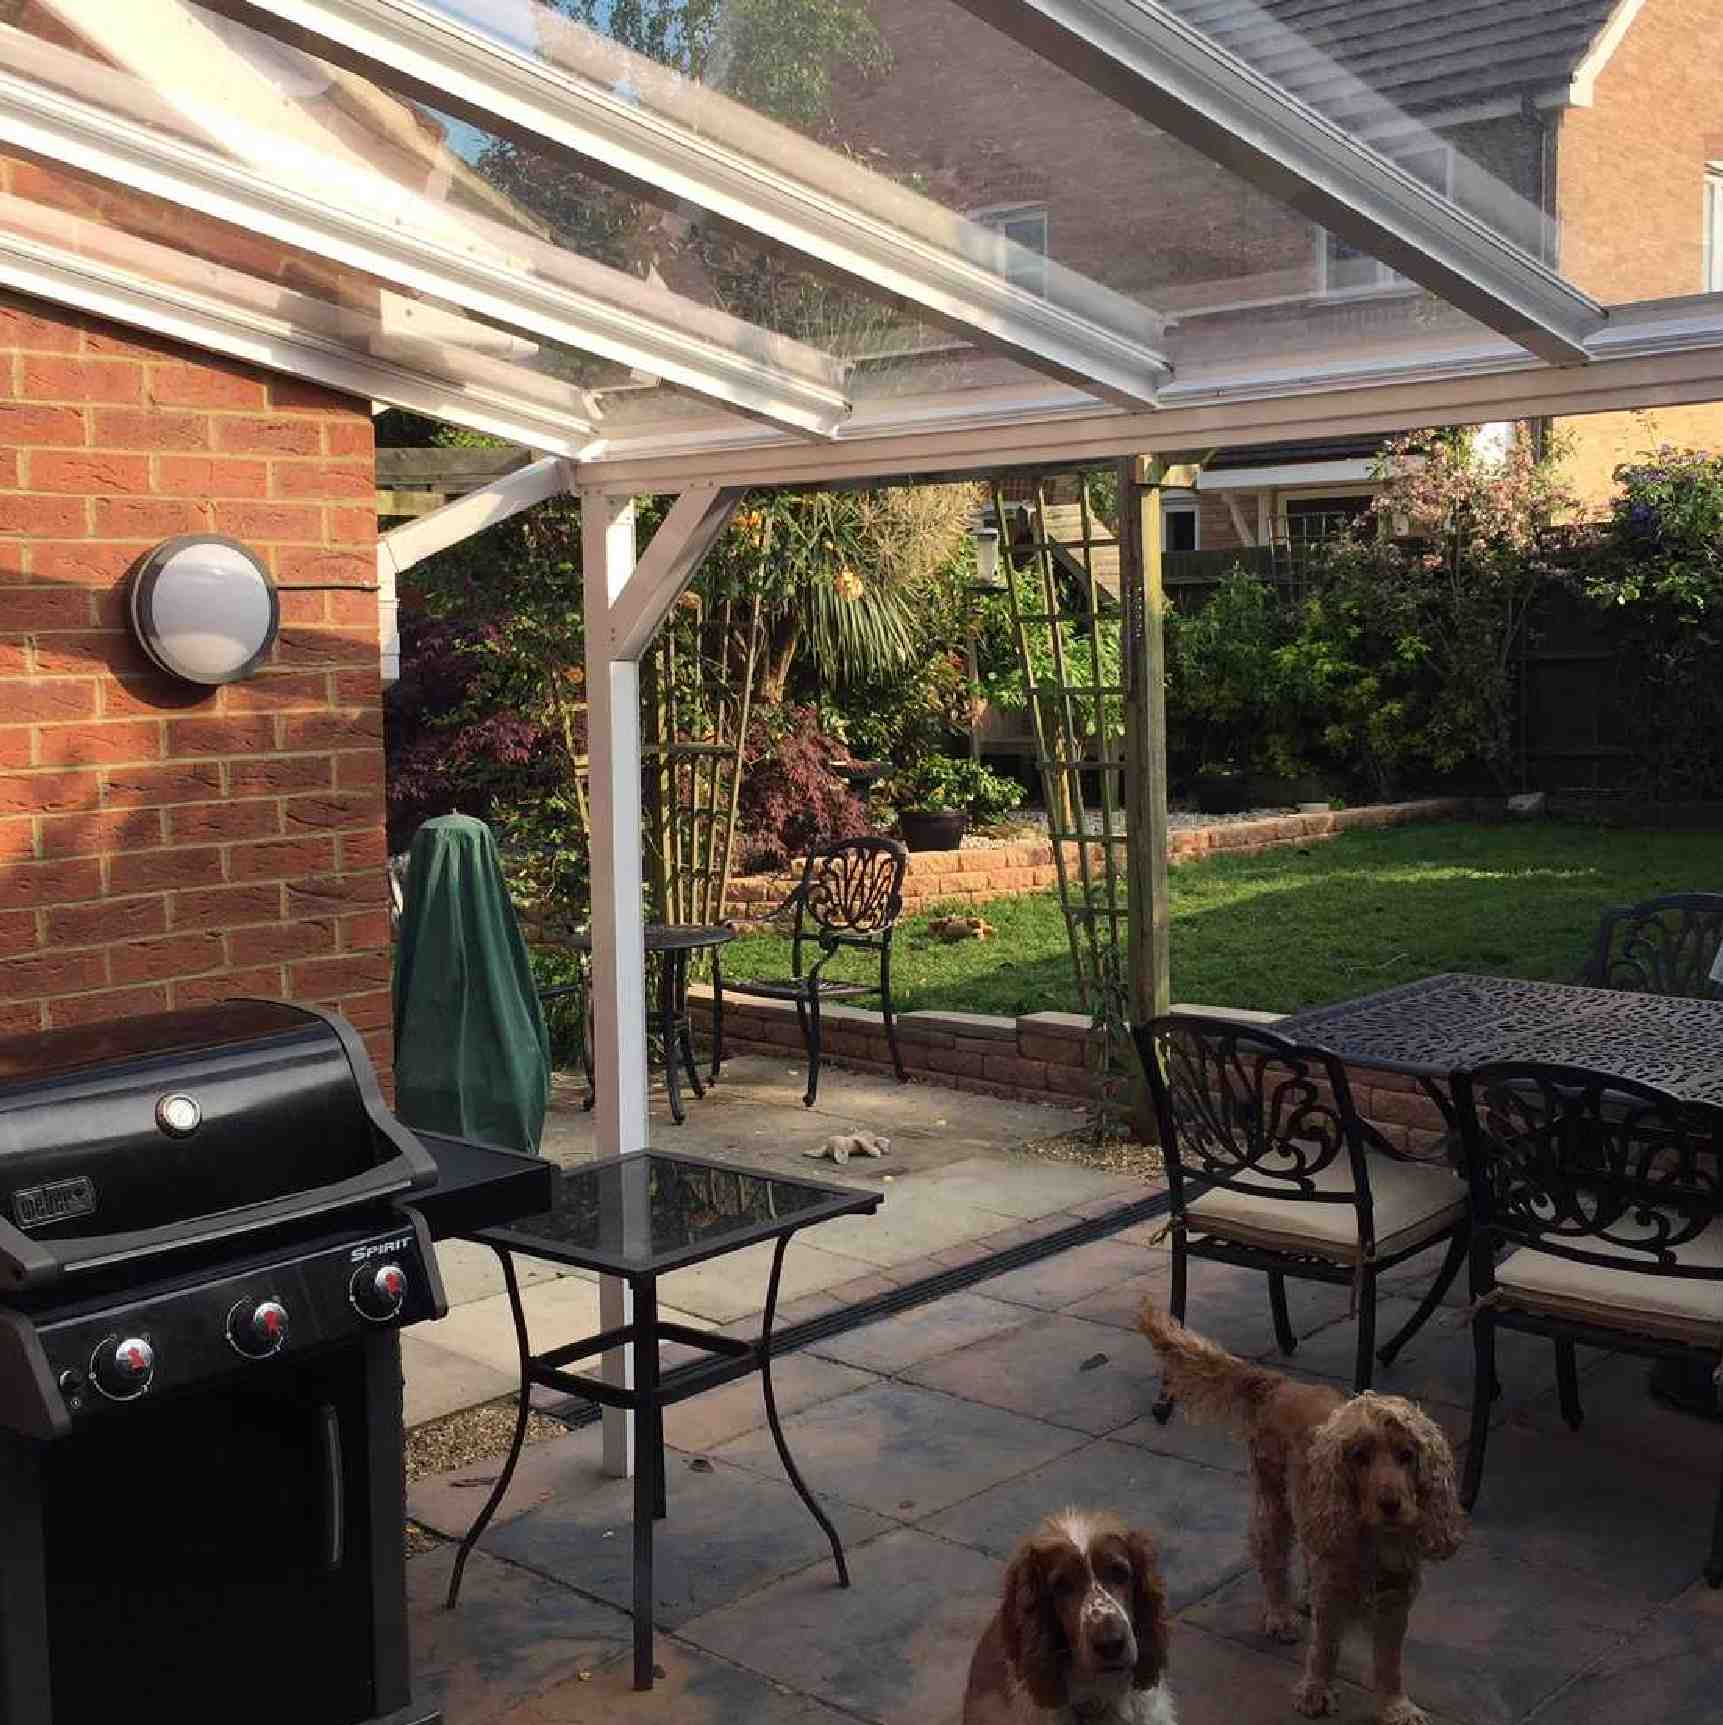 Omega Verandah with 16mm Polycarbonate Glazing - 7.0m (W) x 4.0m (P), (4) Supporting Posts